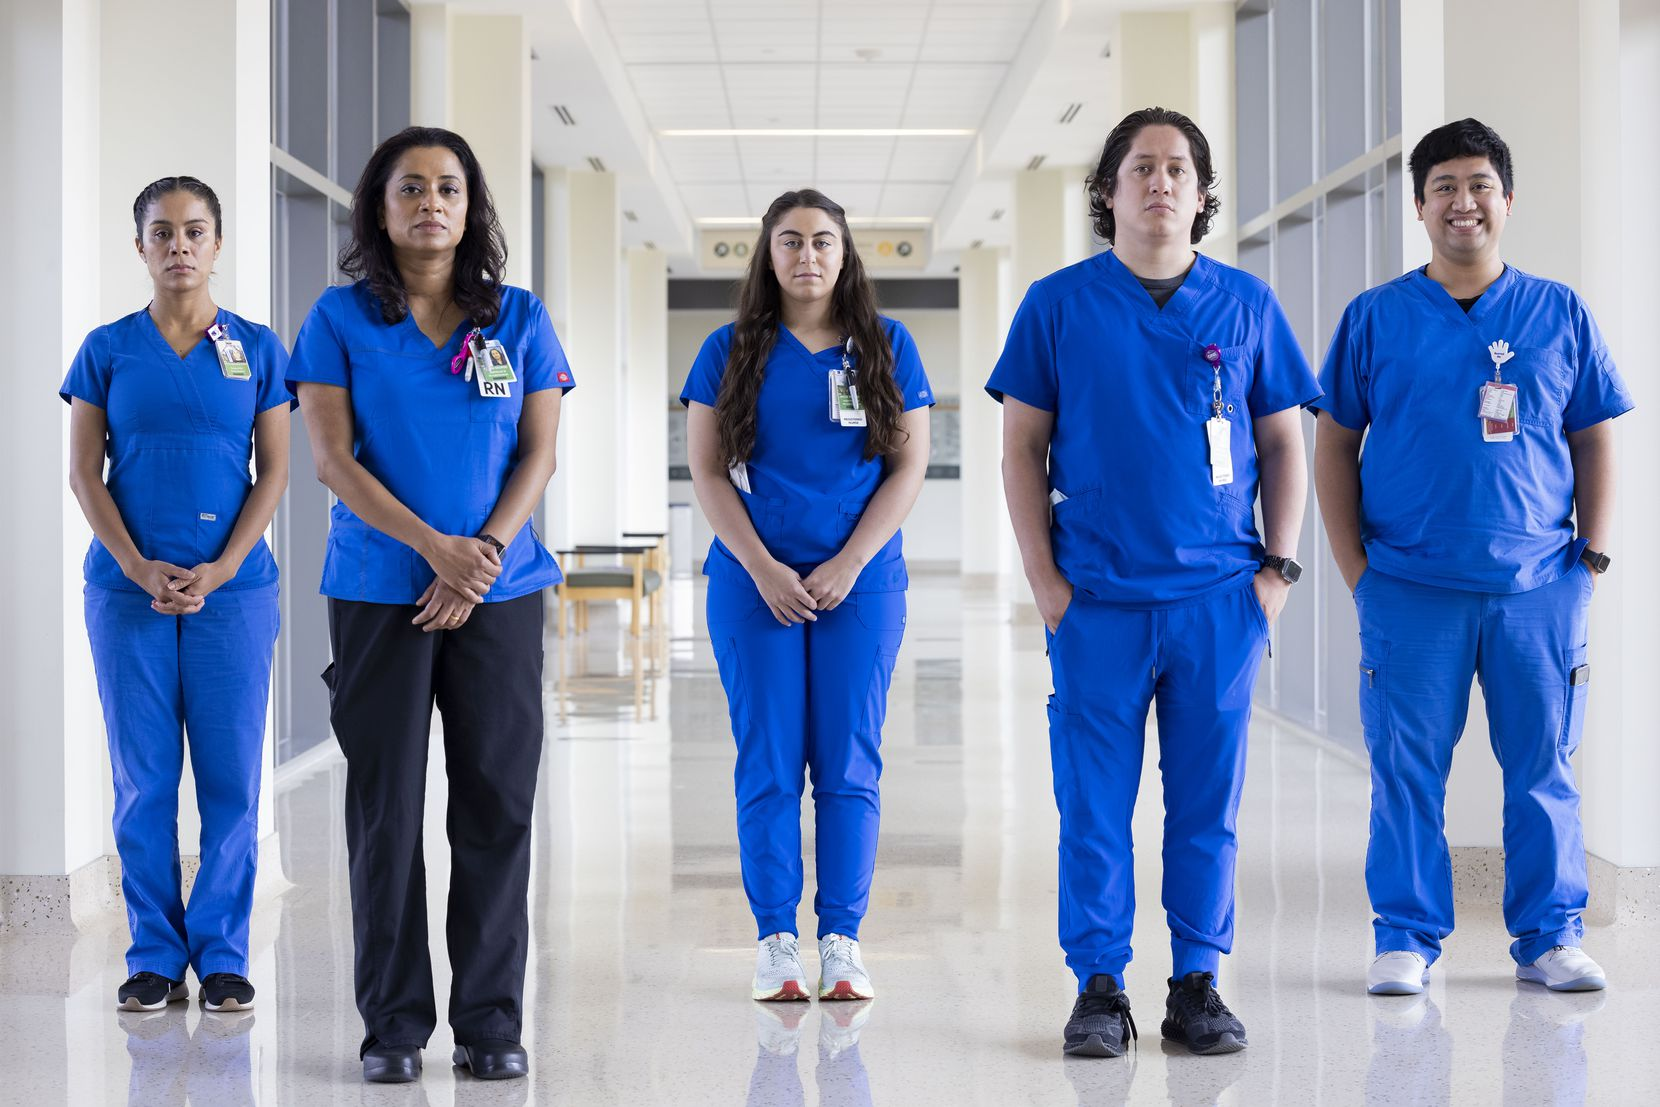 Among the hundreds of Parkland nurses on the front lines of the COVID-19 fight are (from left) charge nurses Perla Sanchez-Perez, Anitha George, Jaycie Martinez, Angel Marrufo and Jan Noguerra.